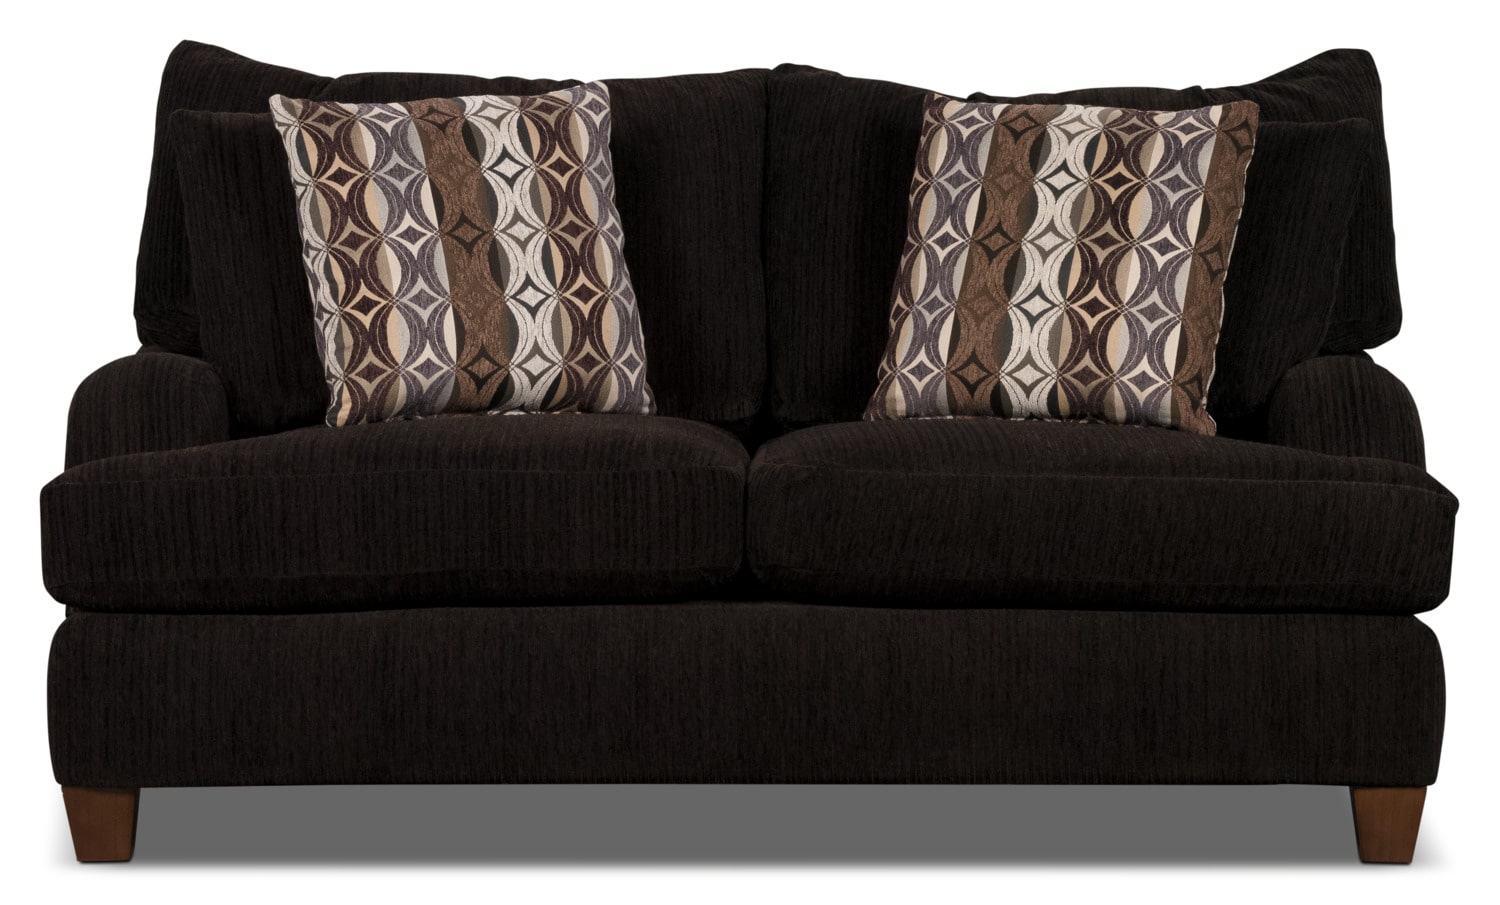 Living Room Furniture - Putty Chenille Loveseat - Chocolate